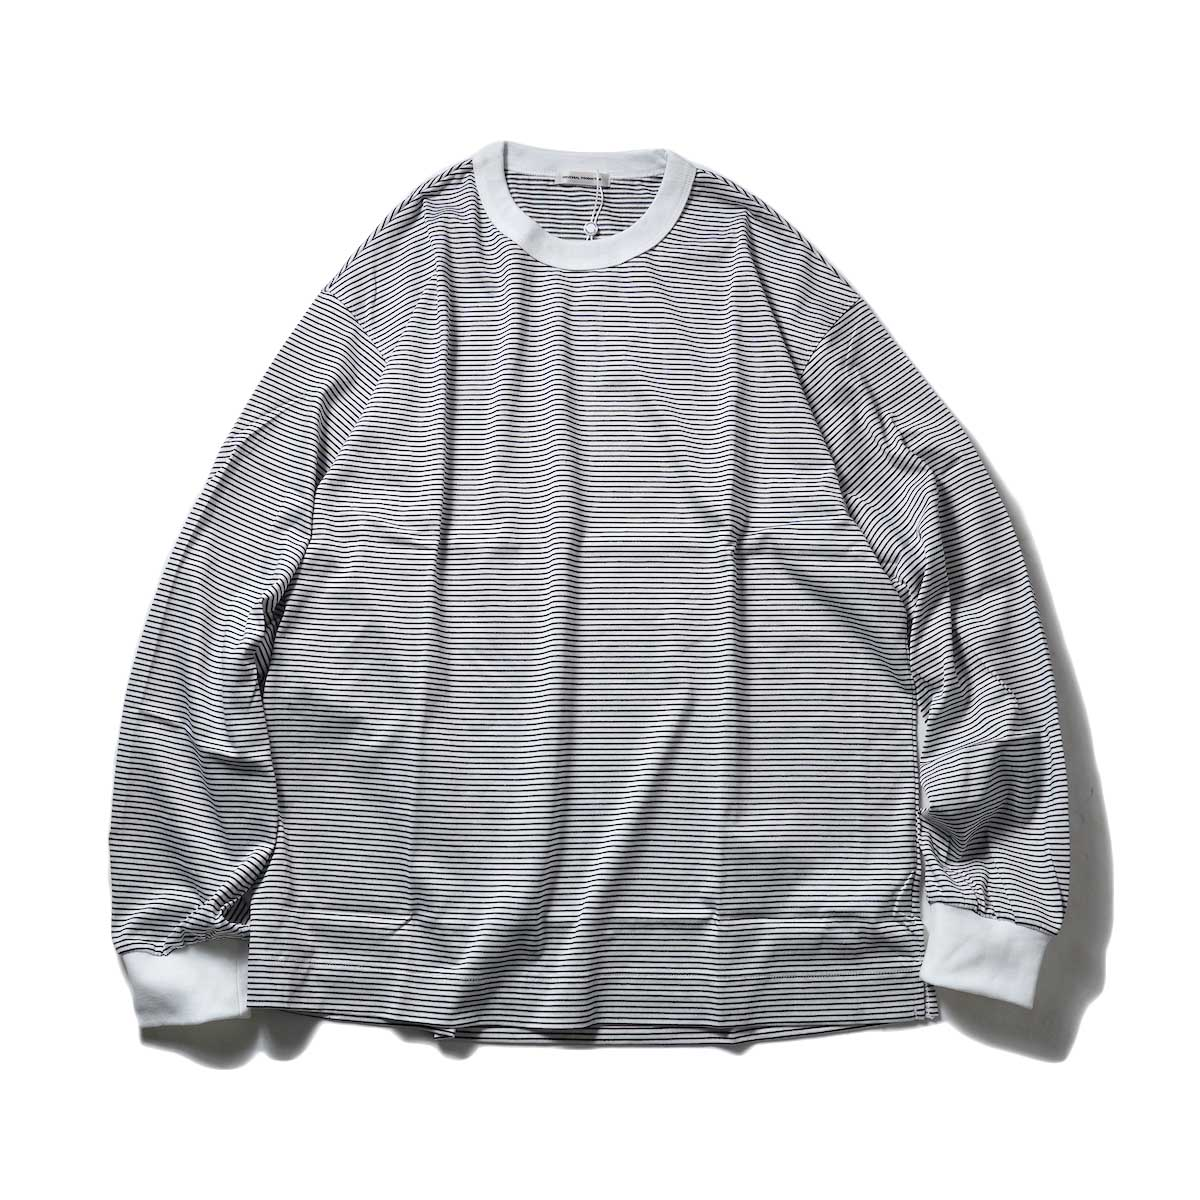 UNIVERSAL PRODUCTS / BORDER L/S T-SHIRT (White)